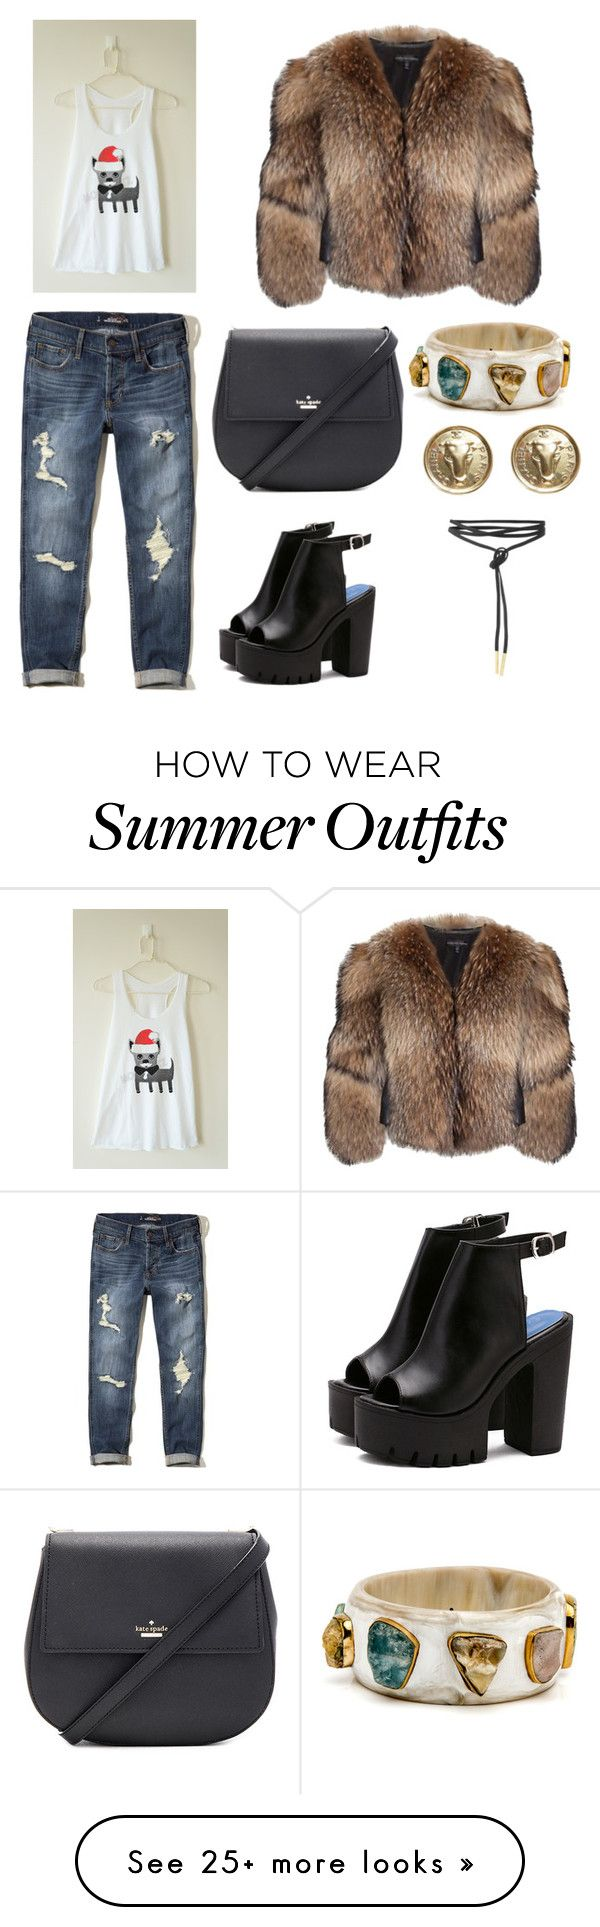 """""""Outfit"""" by vanessad123 on Polyvore featuring Adrienne Landau, Hollist..."""